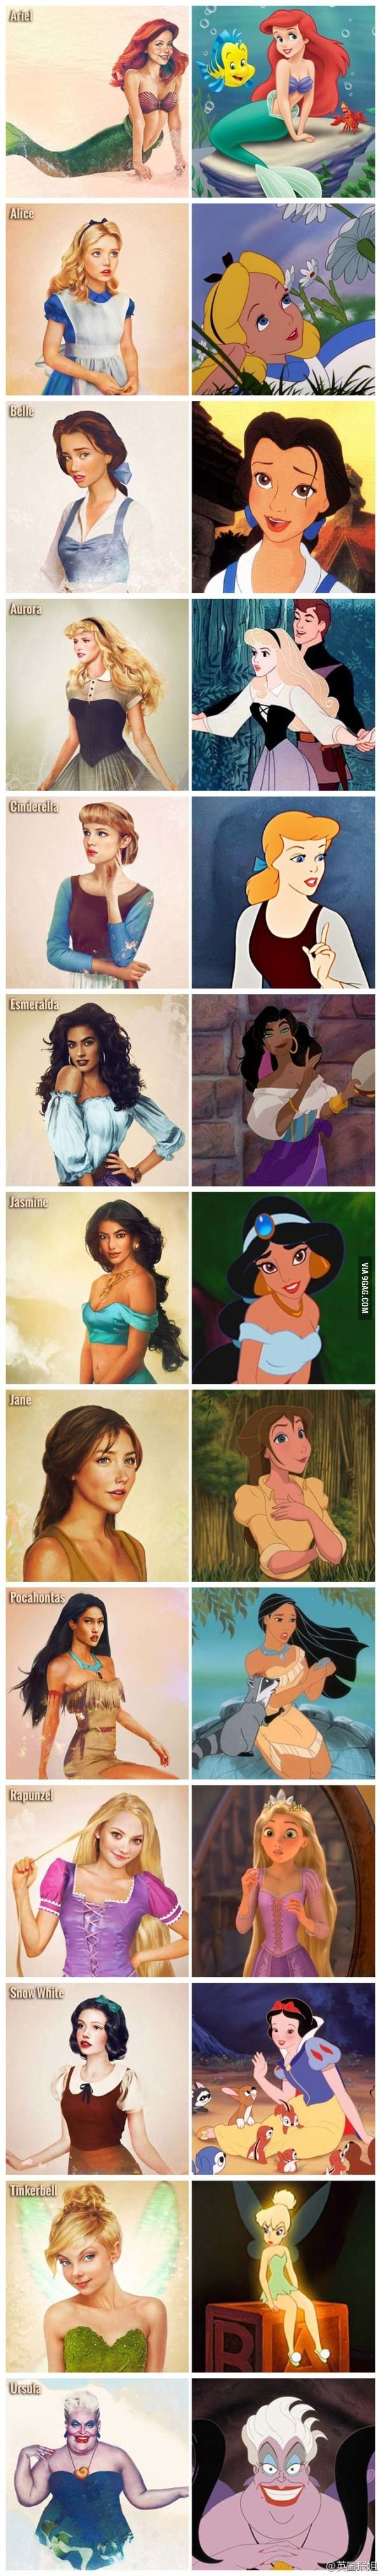 Realistic Disney characters - Cute! Even Ursula at the bottom-- glad they included a bad girl!